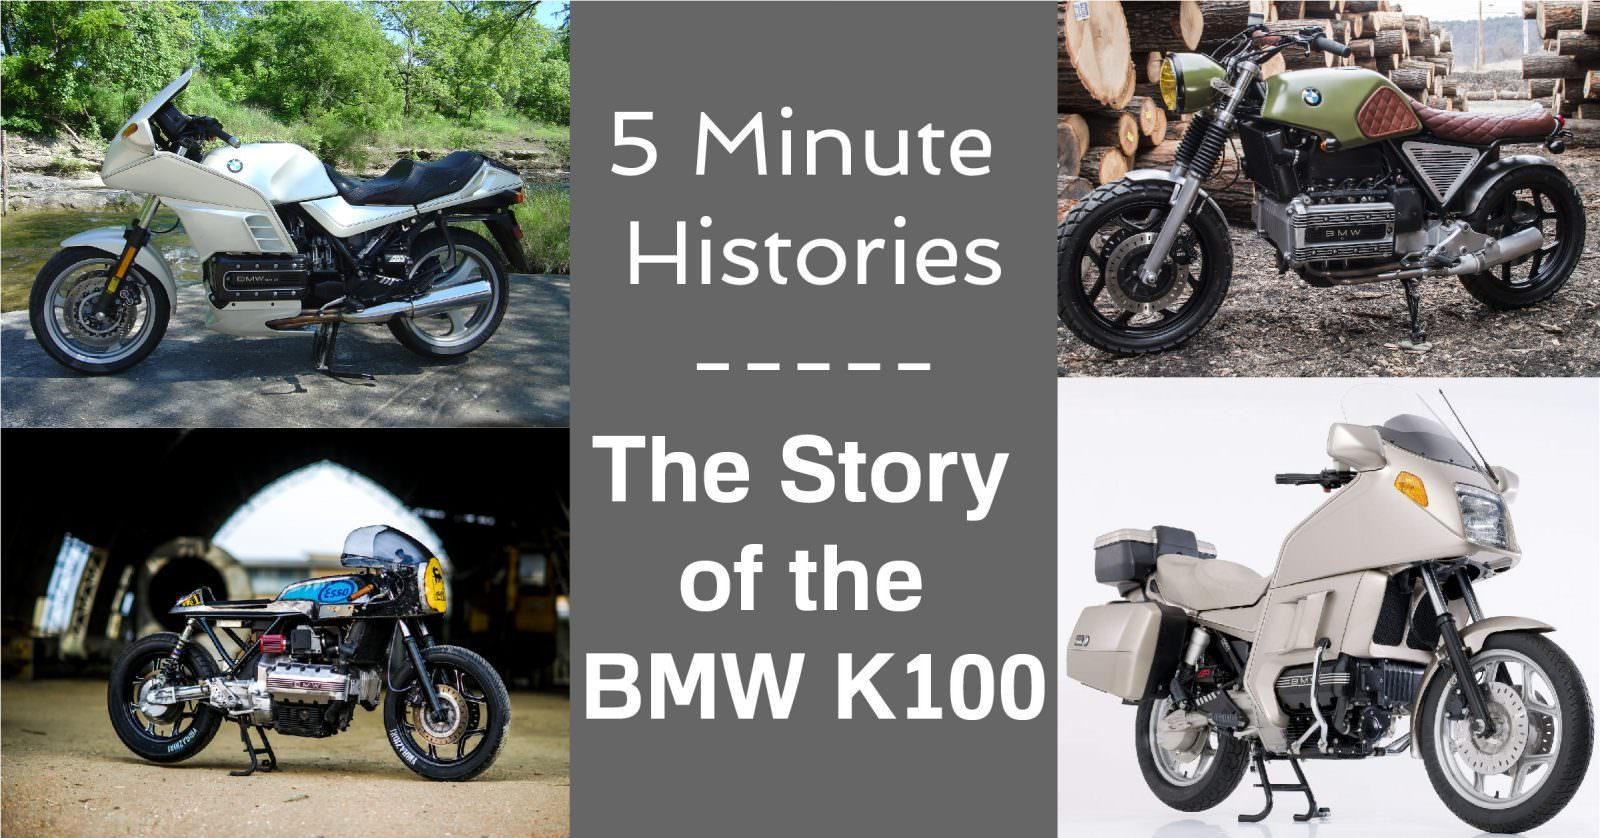 BMW K100 History Article